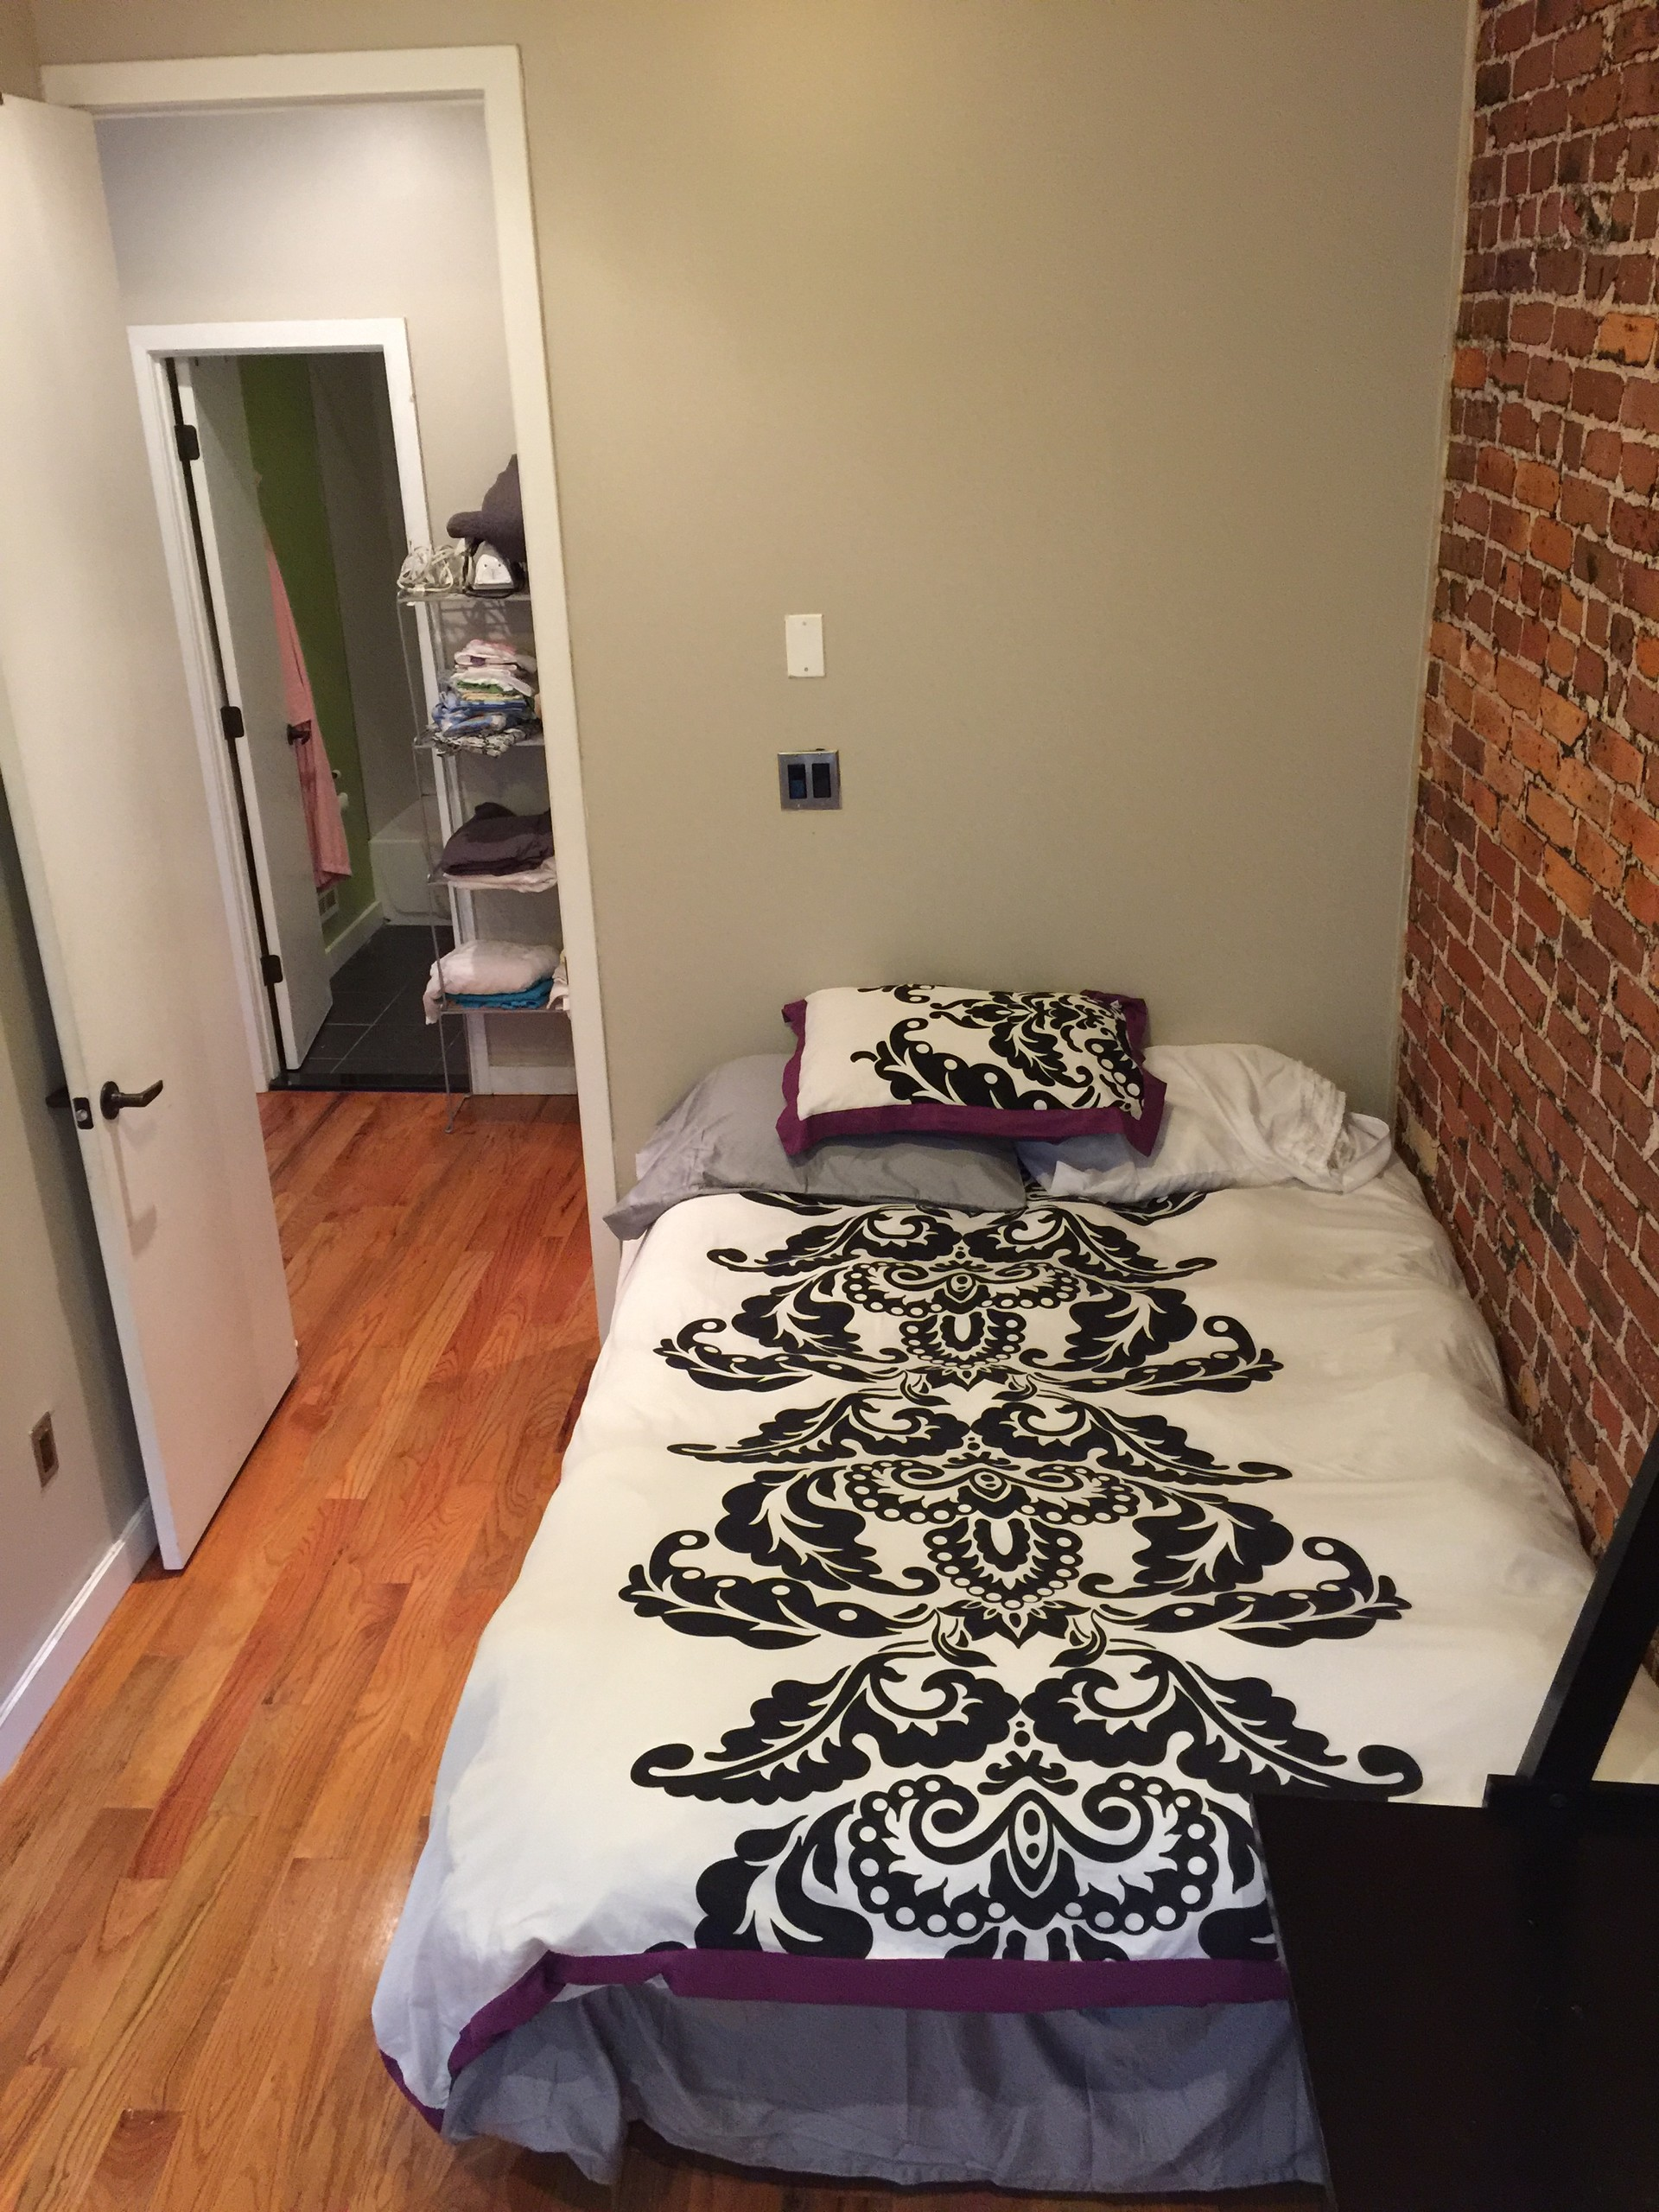 room dsc with large rent nyc for views nowyourcity skyline property furnished